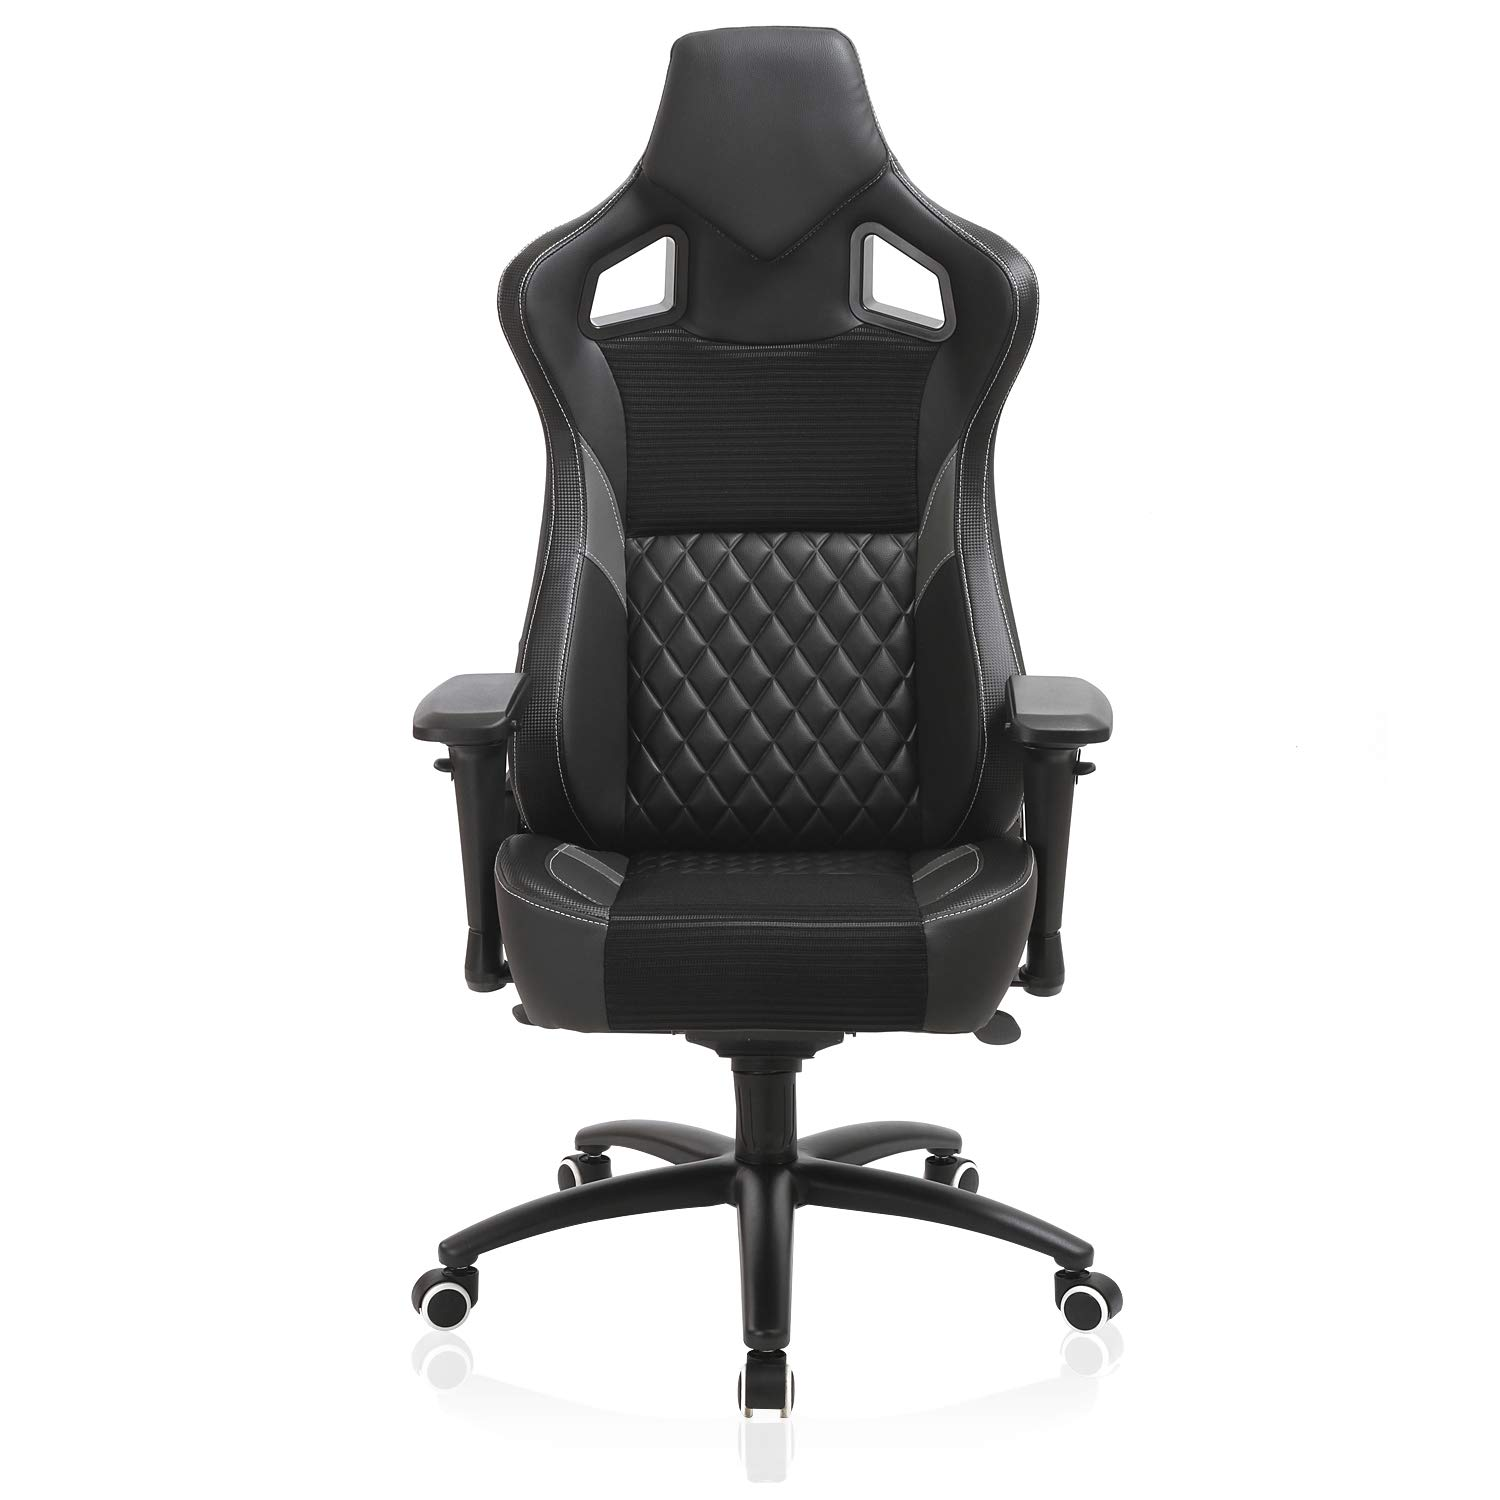 Esports Gaming Memory Foam Chair-Larger Size Racing Style Ergonomic Reclining Swivel High Back Computer Chair, 4D Armrest Tilt Lock Big and Tall 350lb by XISHE